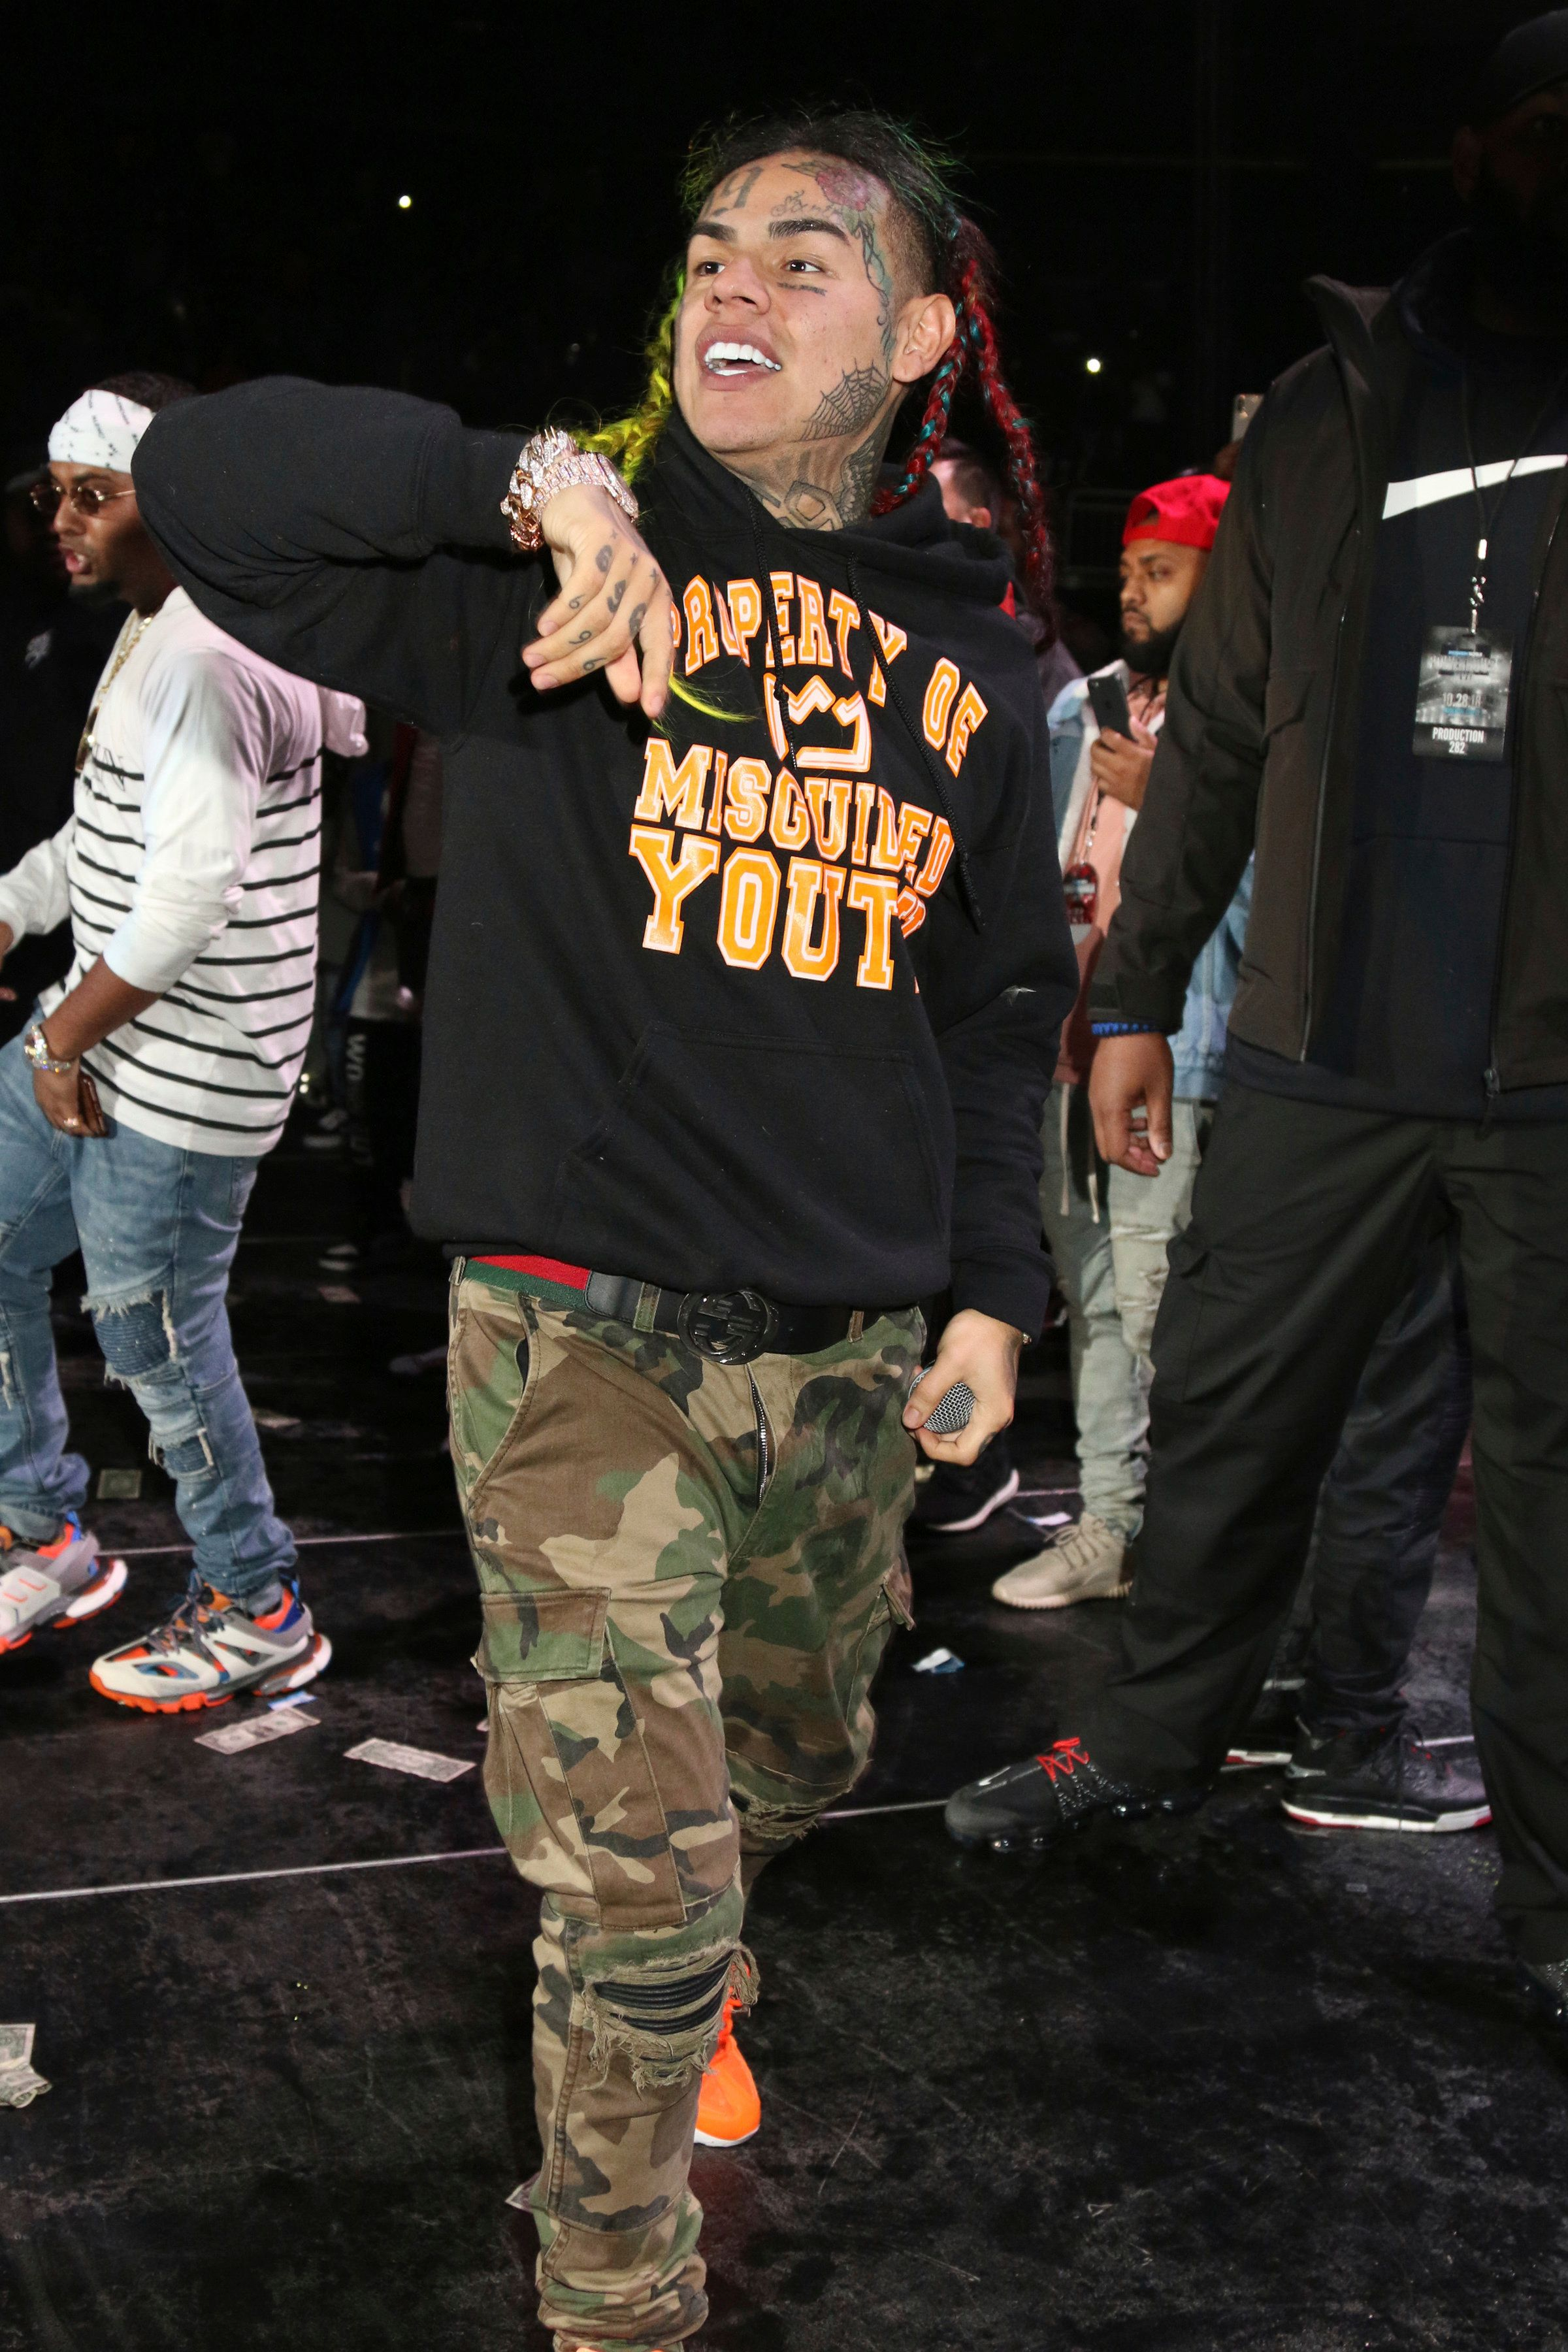 ***FILE PHOTO*** Tekashi 6ix9ine arrested on racketeering and weapons charges NEWARK, NJ - OCTOBER 28: Tekashi 6ix9ine at Power 105.1's Powerhouse 2018 at Prudential Center on October 28, 2018 in Newark, New Jersey. Credit: Walik Goshorn/MediaPunch /IPX